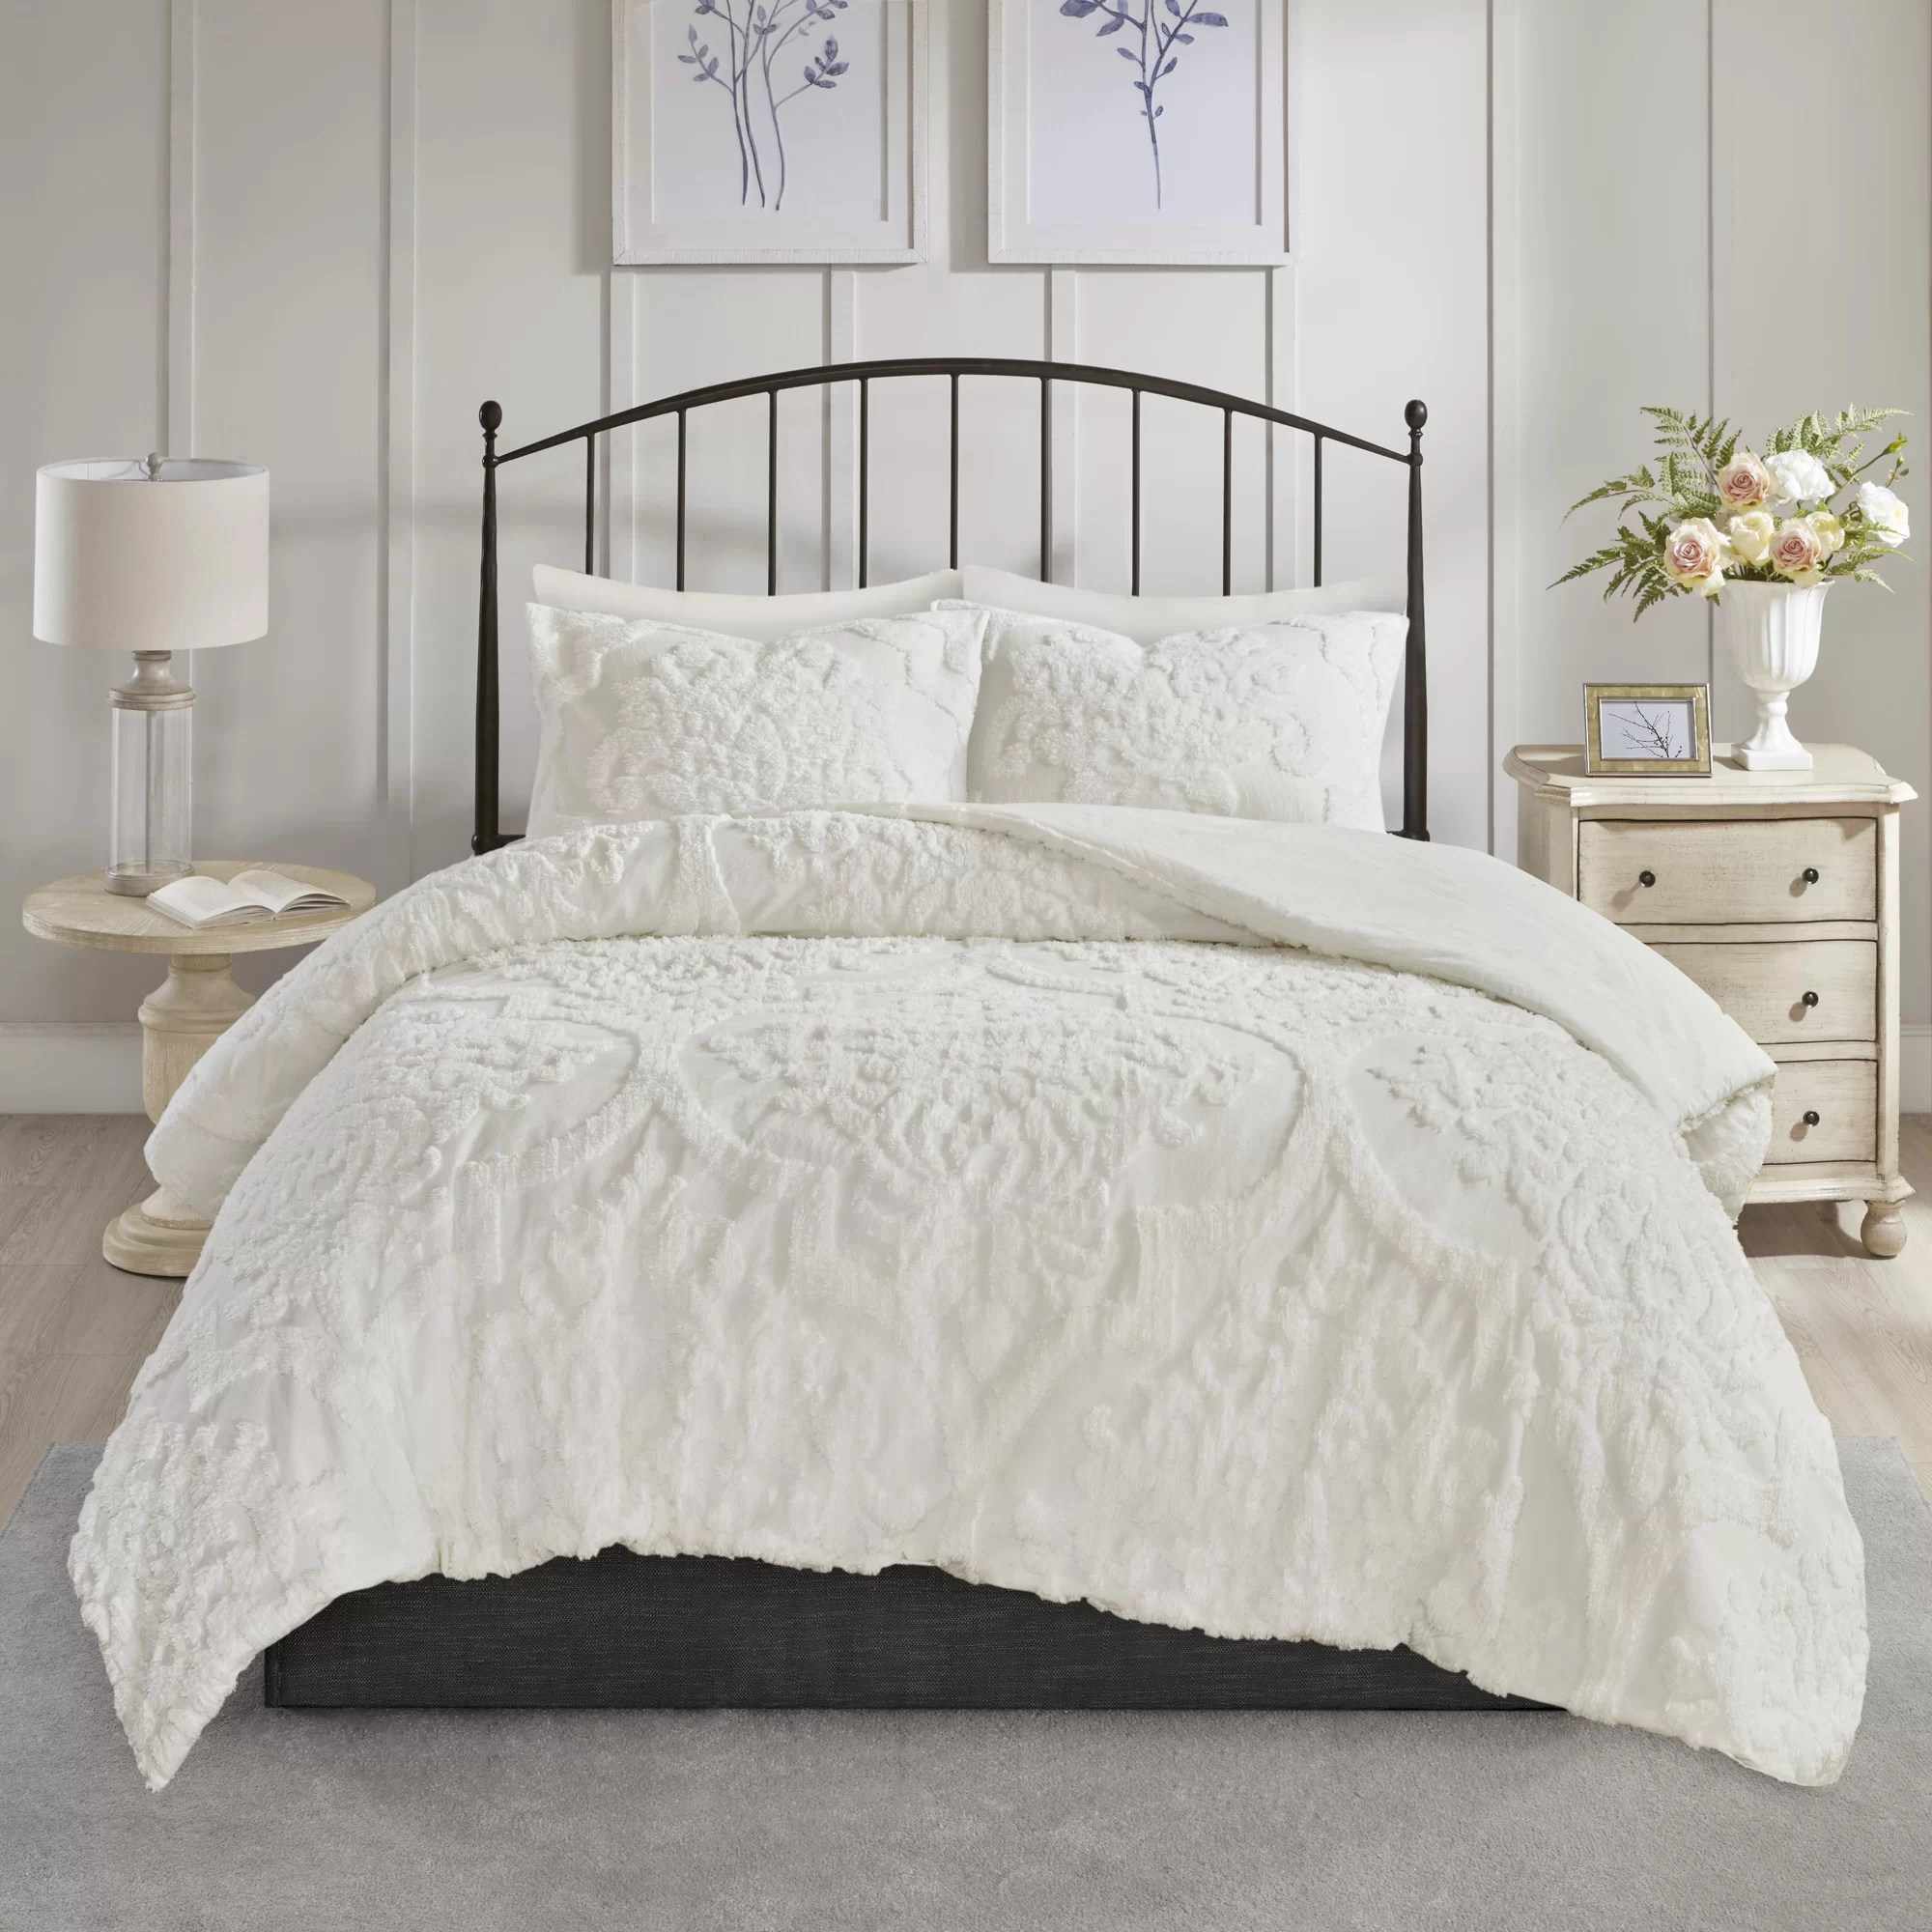 Duvet And Comforter Sets Kennesaw Chenille Damask Comforter Set